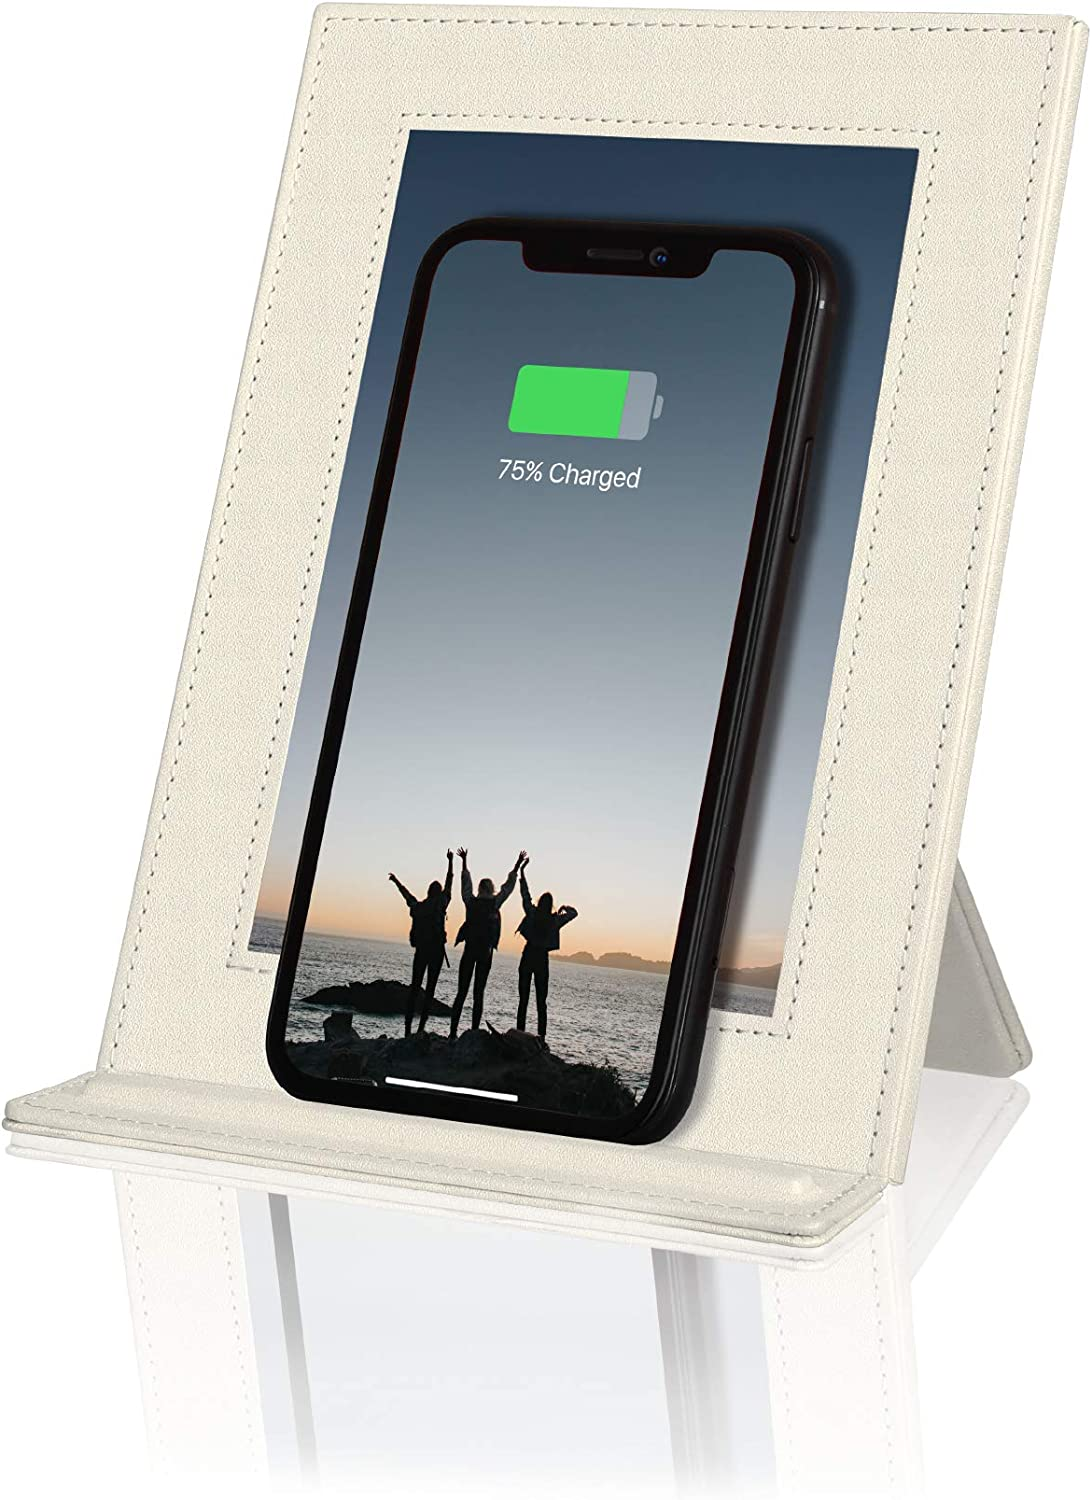 PROXA Wireless Charger Photo Frame, Qi Enabled Fast Charger Up to 7.5W for iPhone 11/11 Pro/11Pro Max/XS/XS Max/XR, 10W for Galaxy Note 10+/10/9/8/S10+/S10e/S10-Ivory White - No AC Adapter